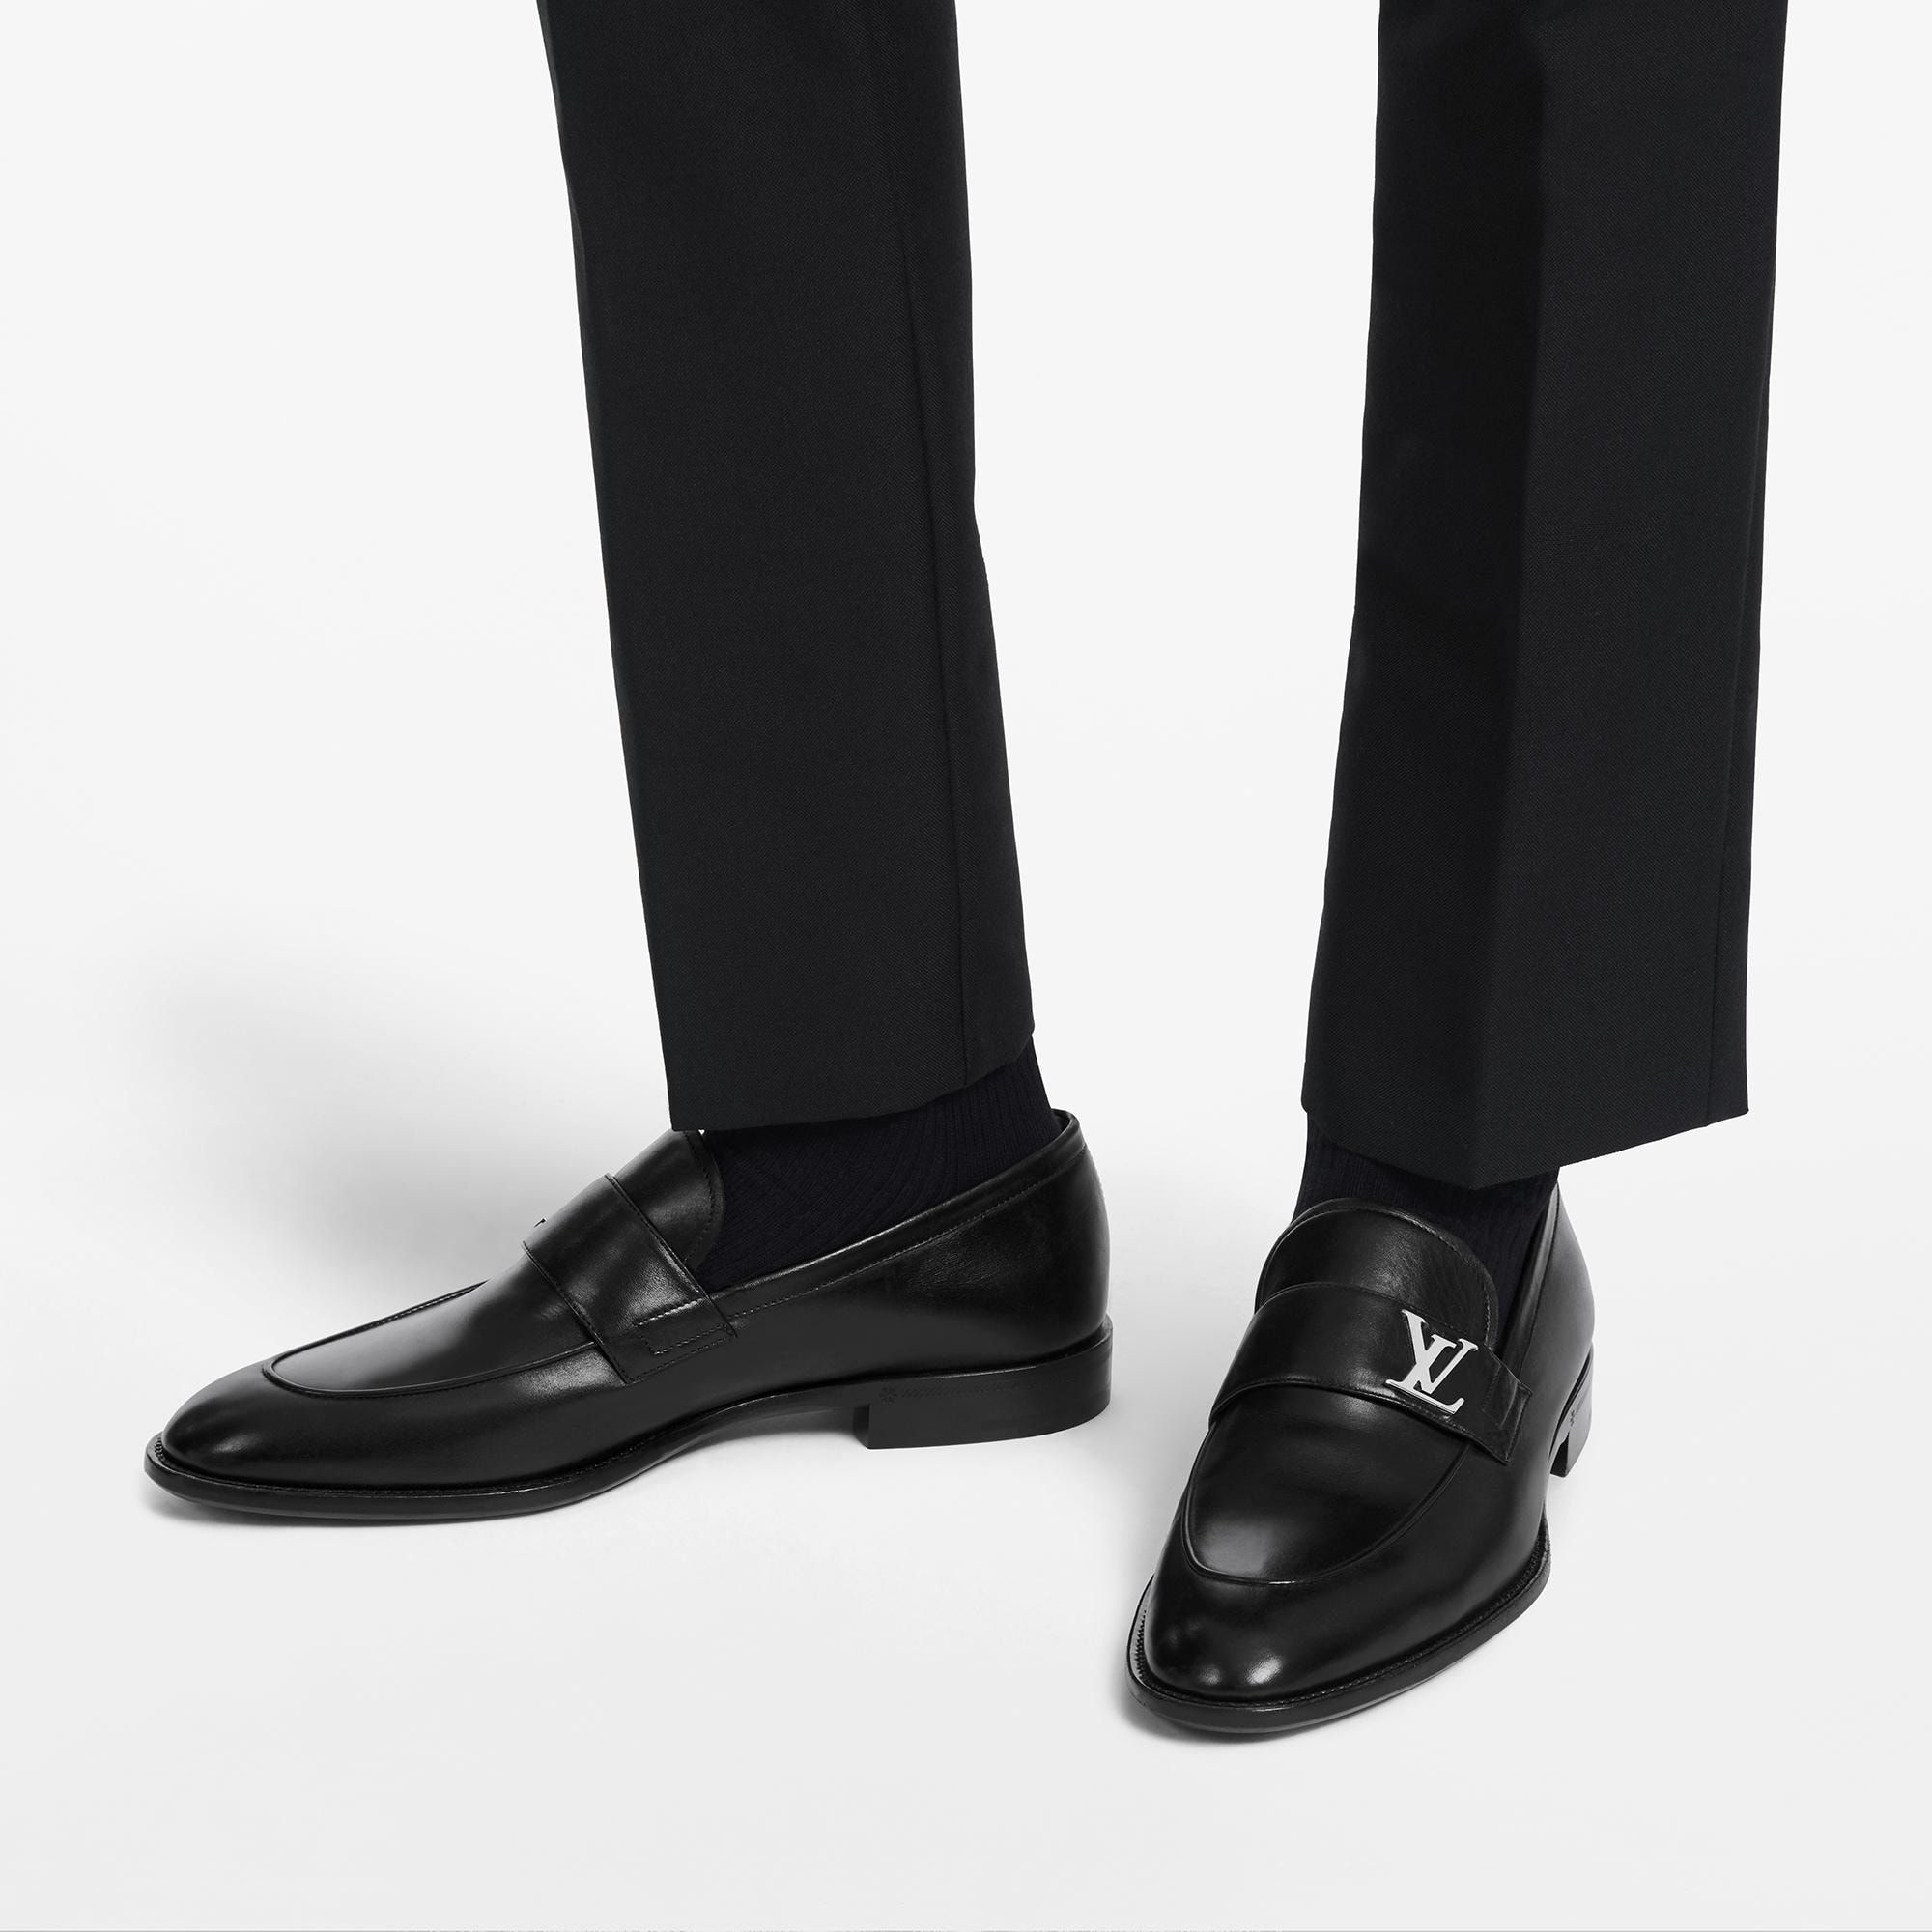 louis vuitton red bottom loafers